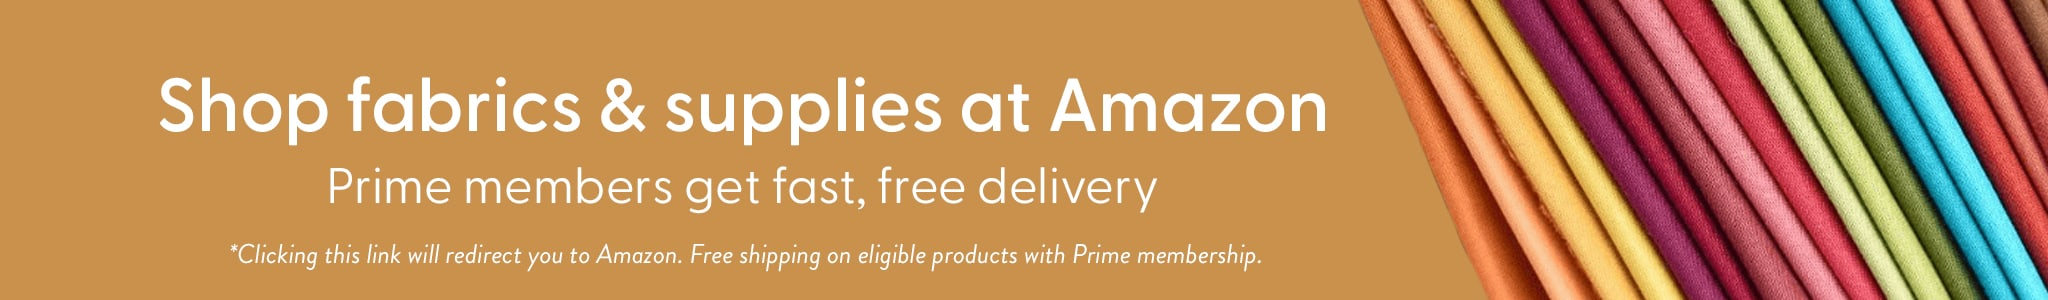 Shop fabric on amazon and get 2 day free shipping for prime members